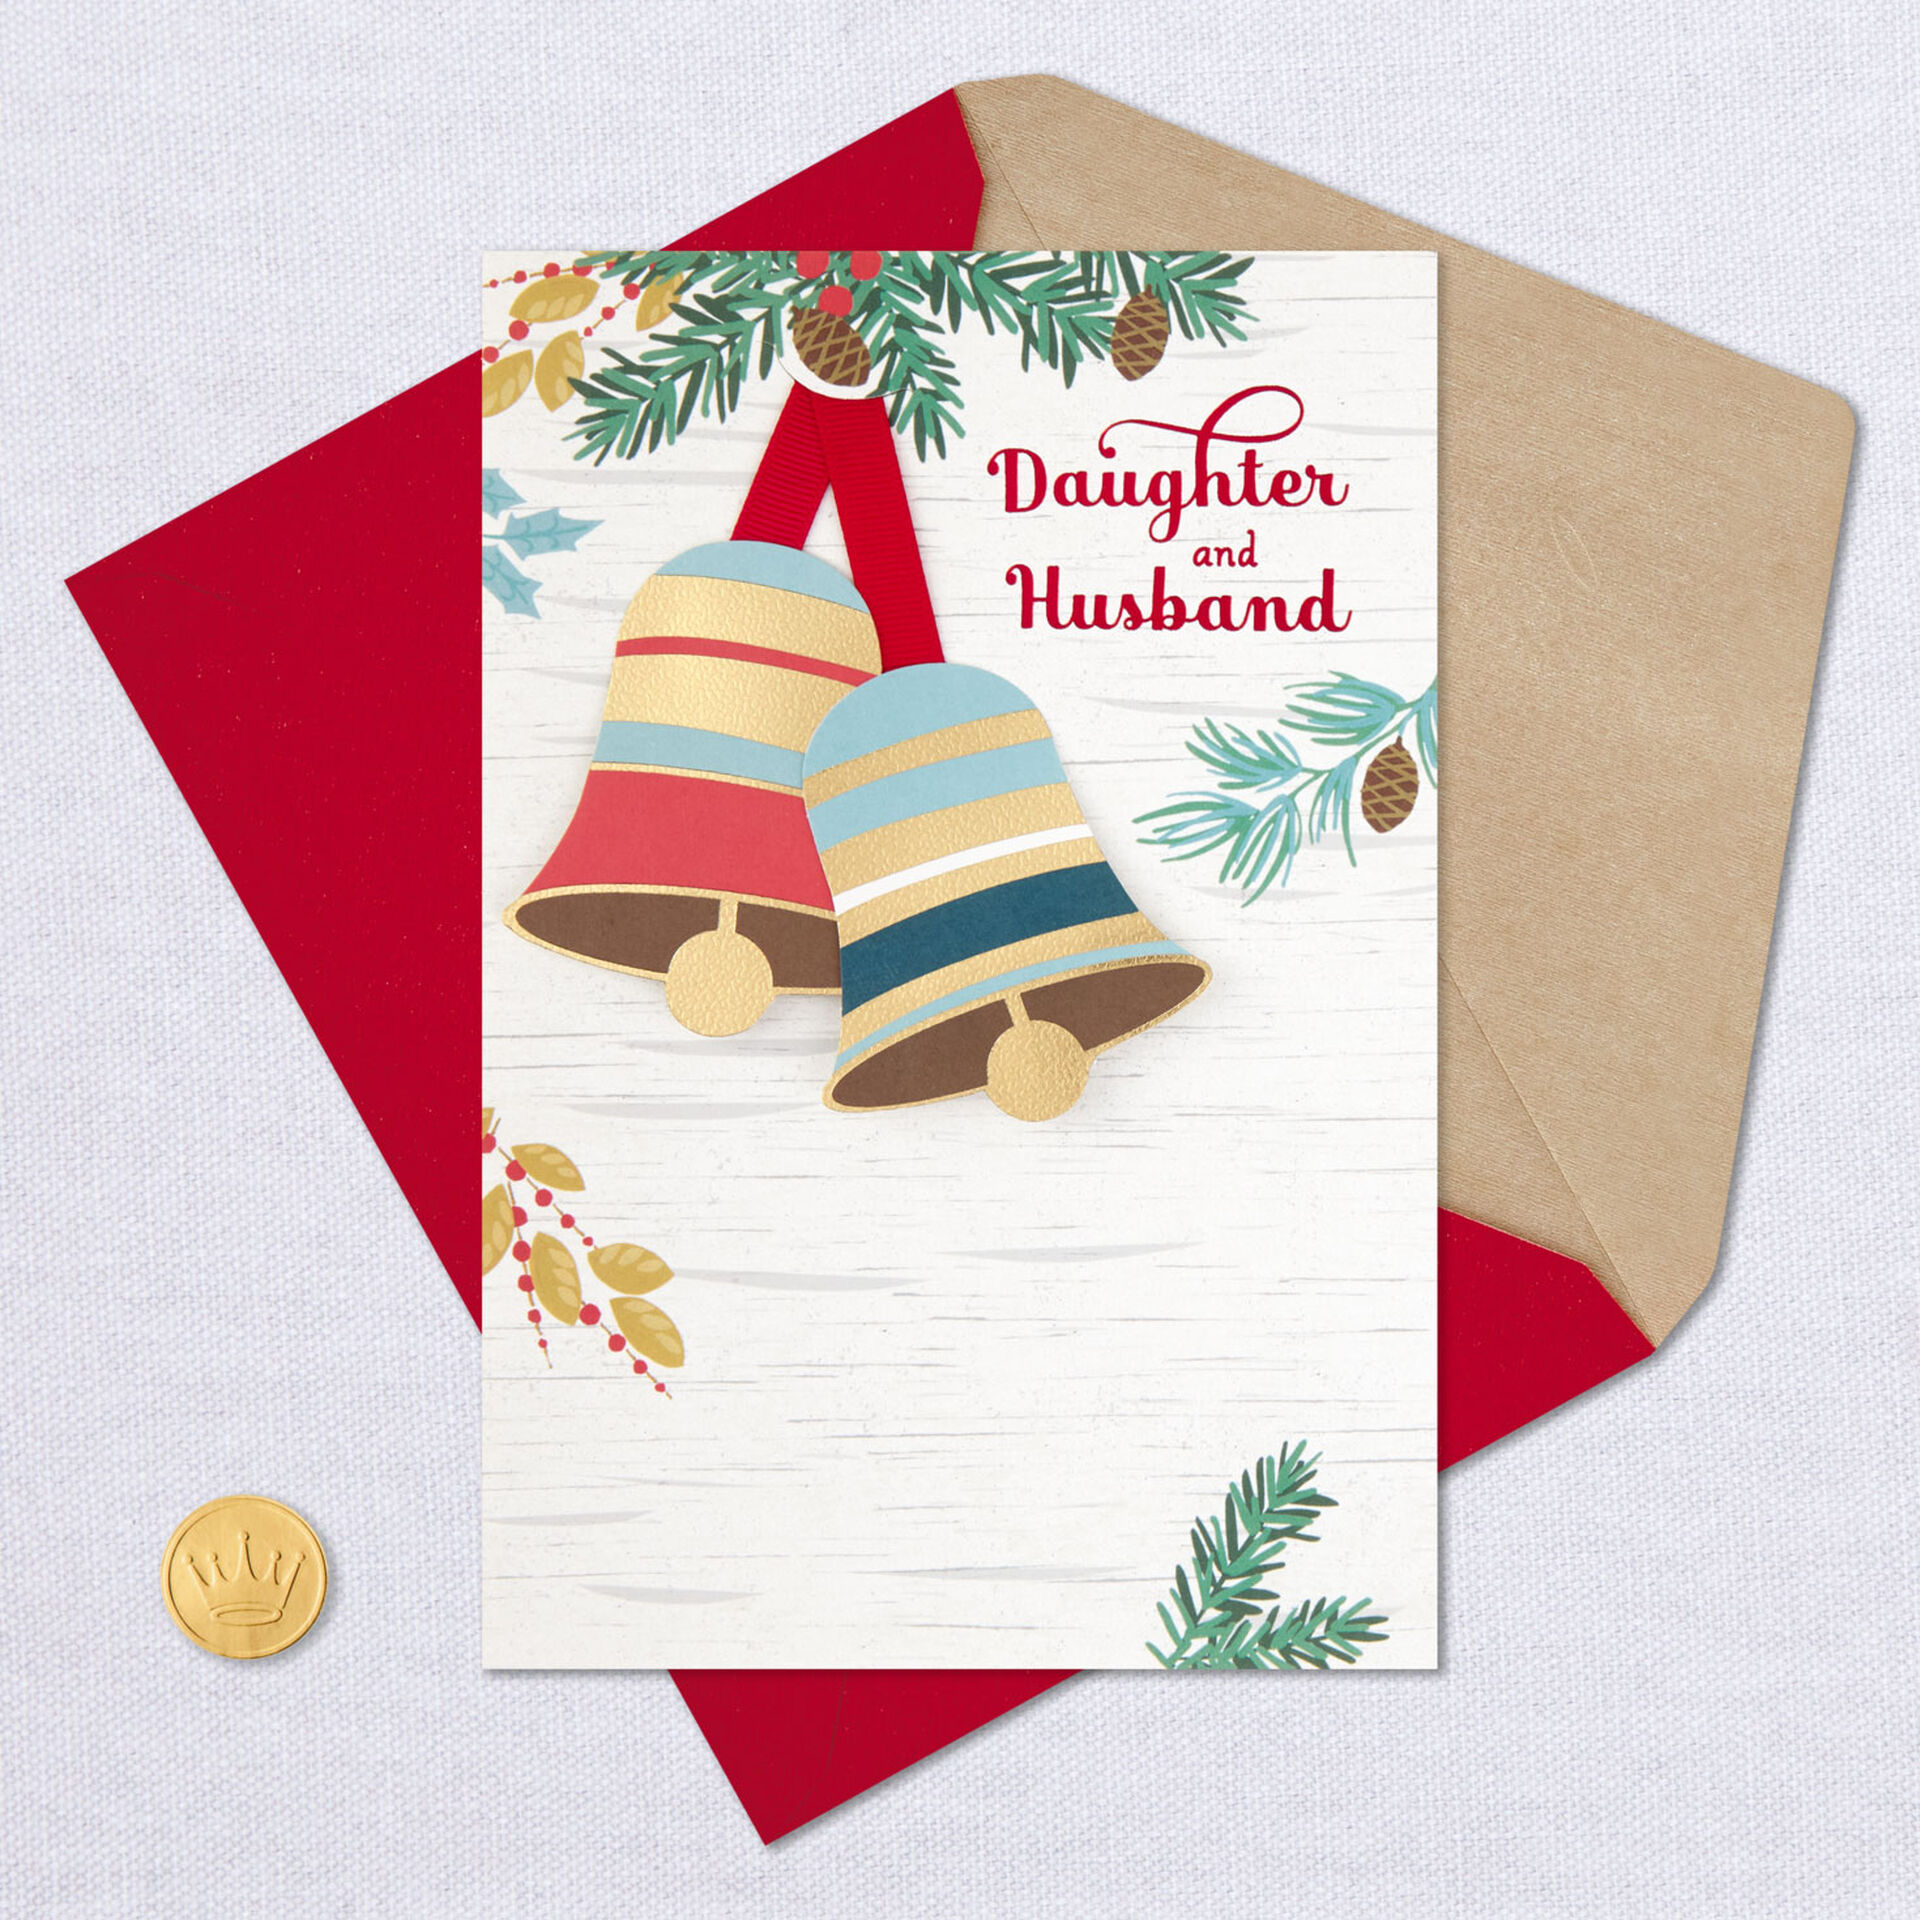 Grateful For You Both Christmas Card For Daughter And Husband Greeting Cards Hallmark